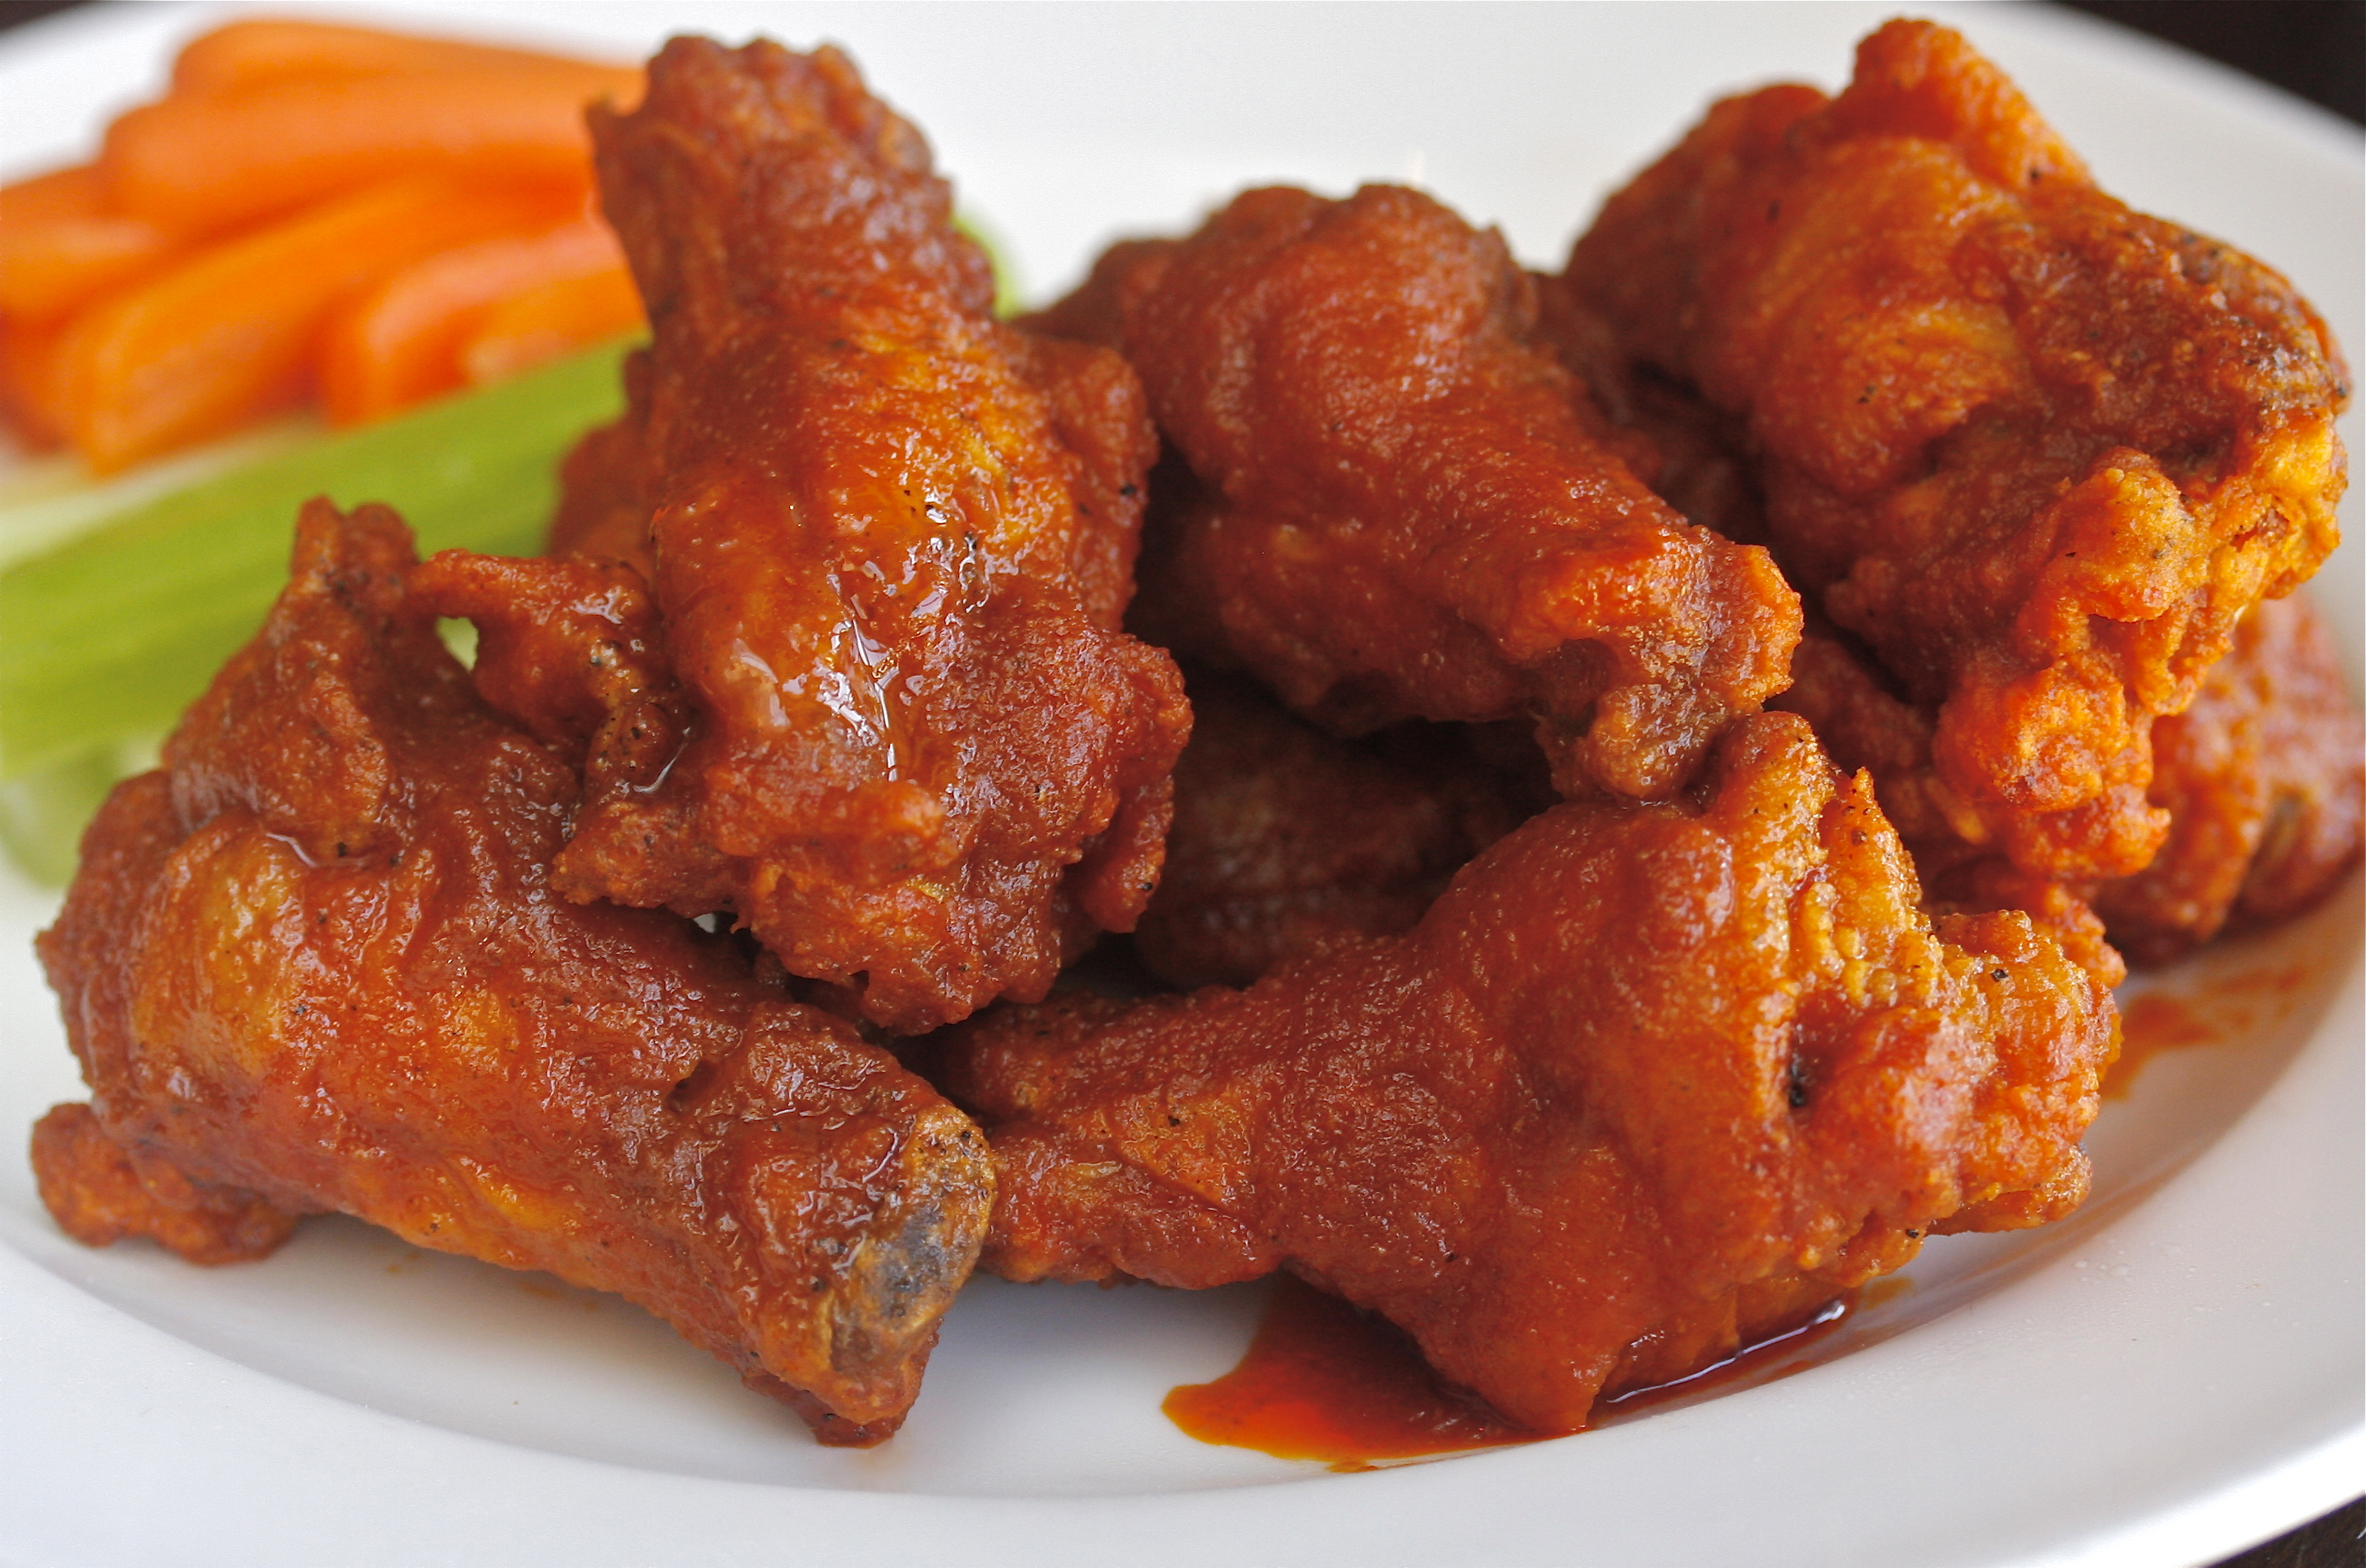 Hot Wings - The Hopeless Housewife® - The Hopeless Housewife®